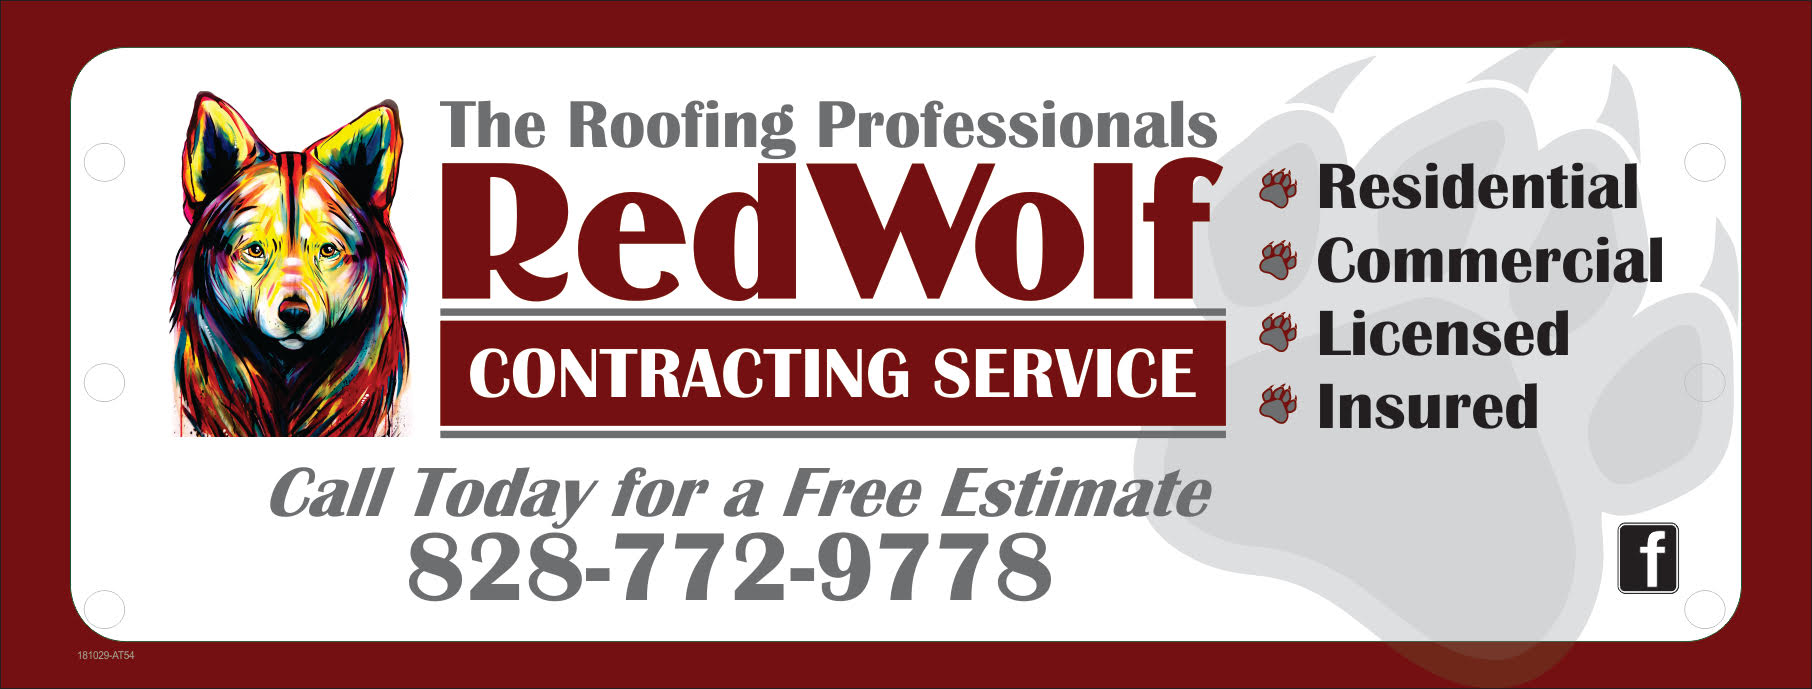 For all your residential and commercial roofing replacement needs, call my buddy Matt (828)772-9778!  He is a trusted local expert who will provide you with a free estimate to complete your job in a professional and timely manner.  Visit their website today!   nc-roofers.com